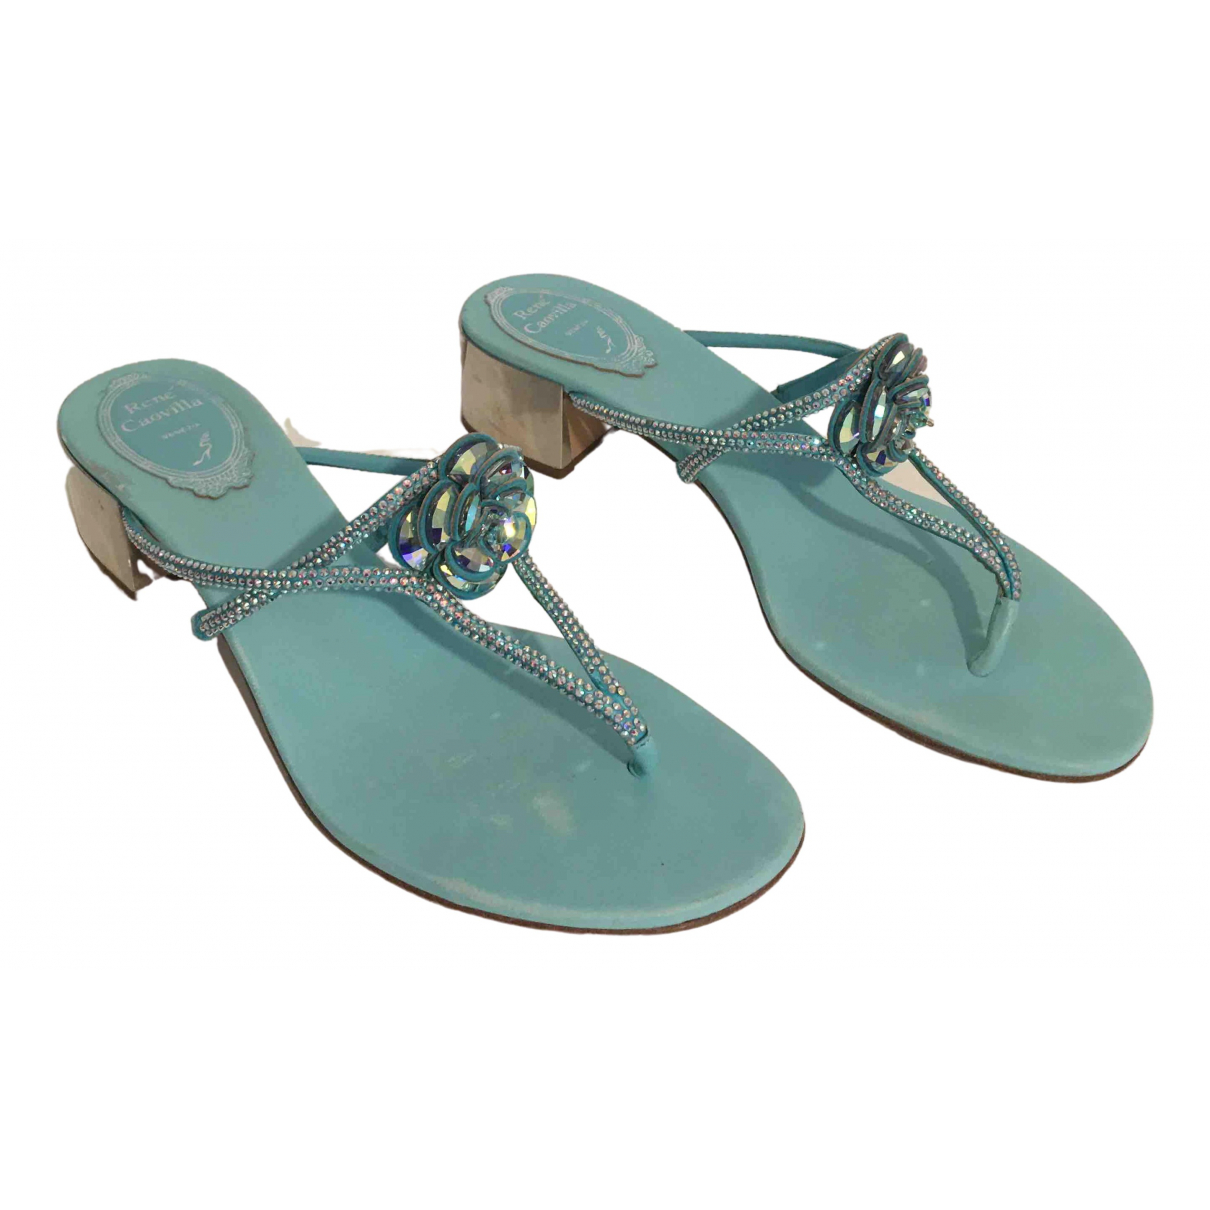 Rene Caovilla \N Green Glitter Sandals for Women 37.5 EU